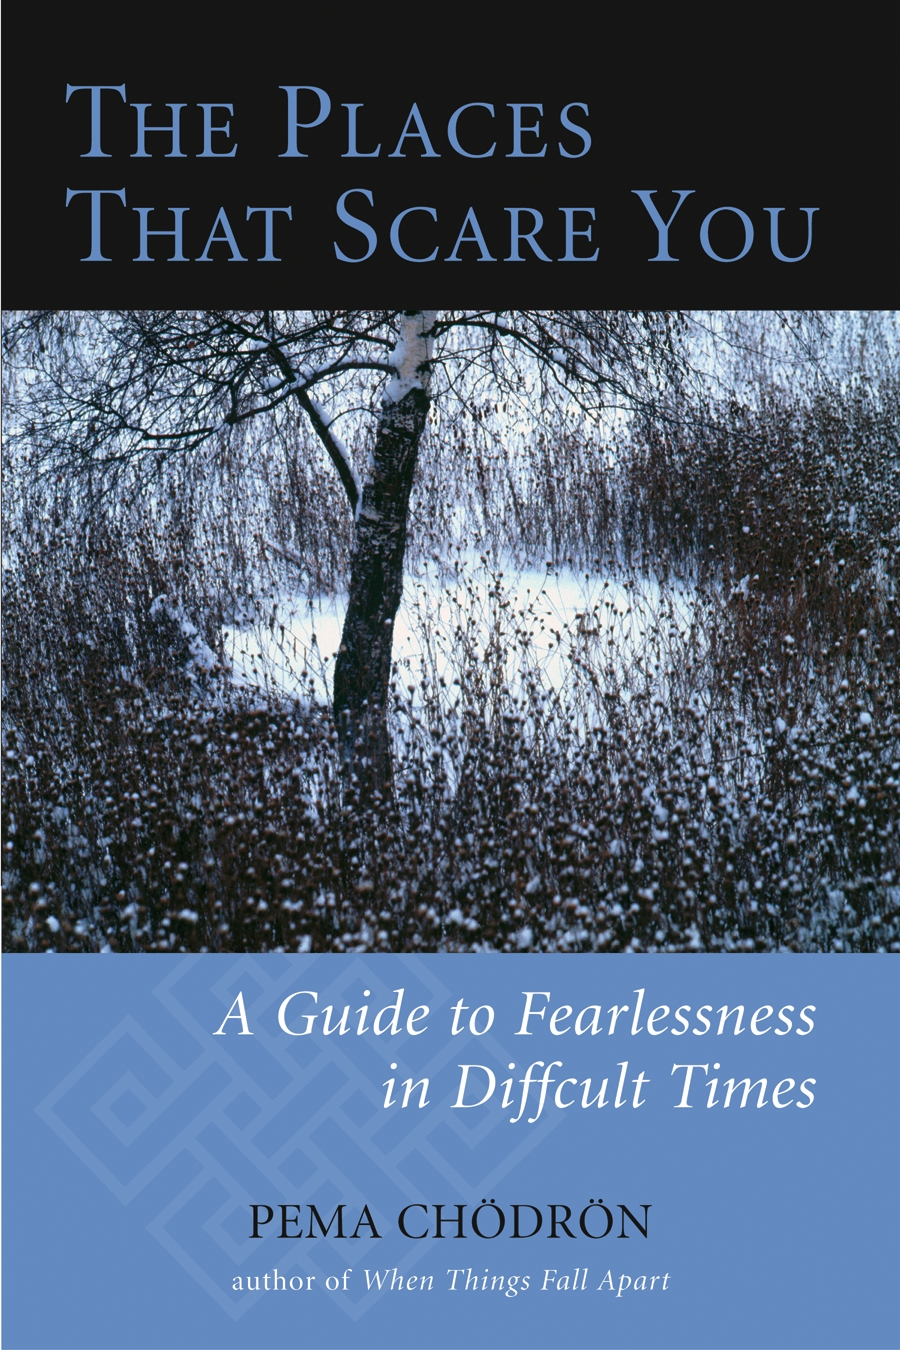 The Places That Scare You By: Pema Chodron